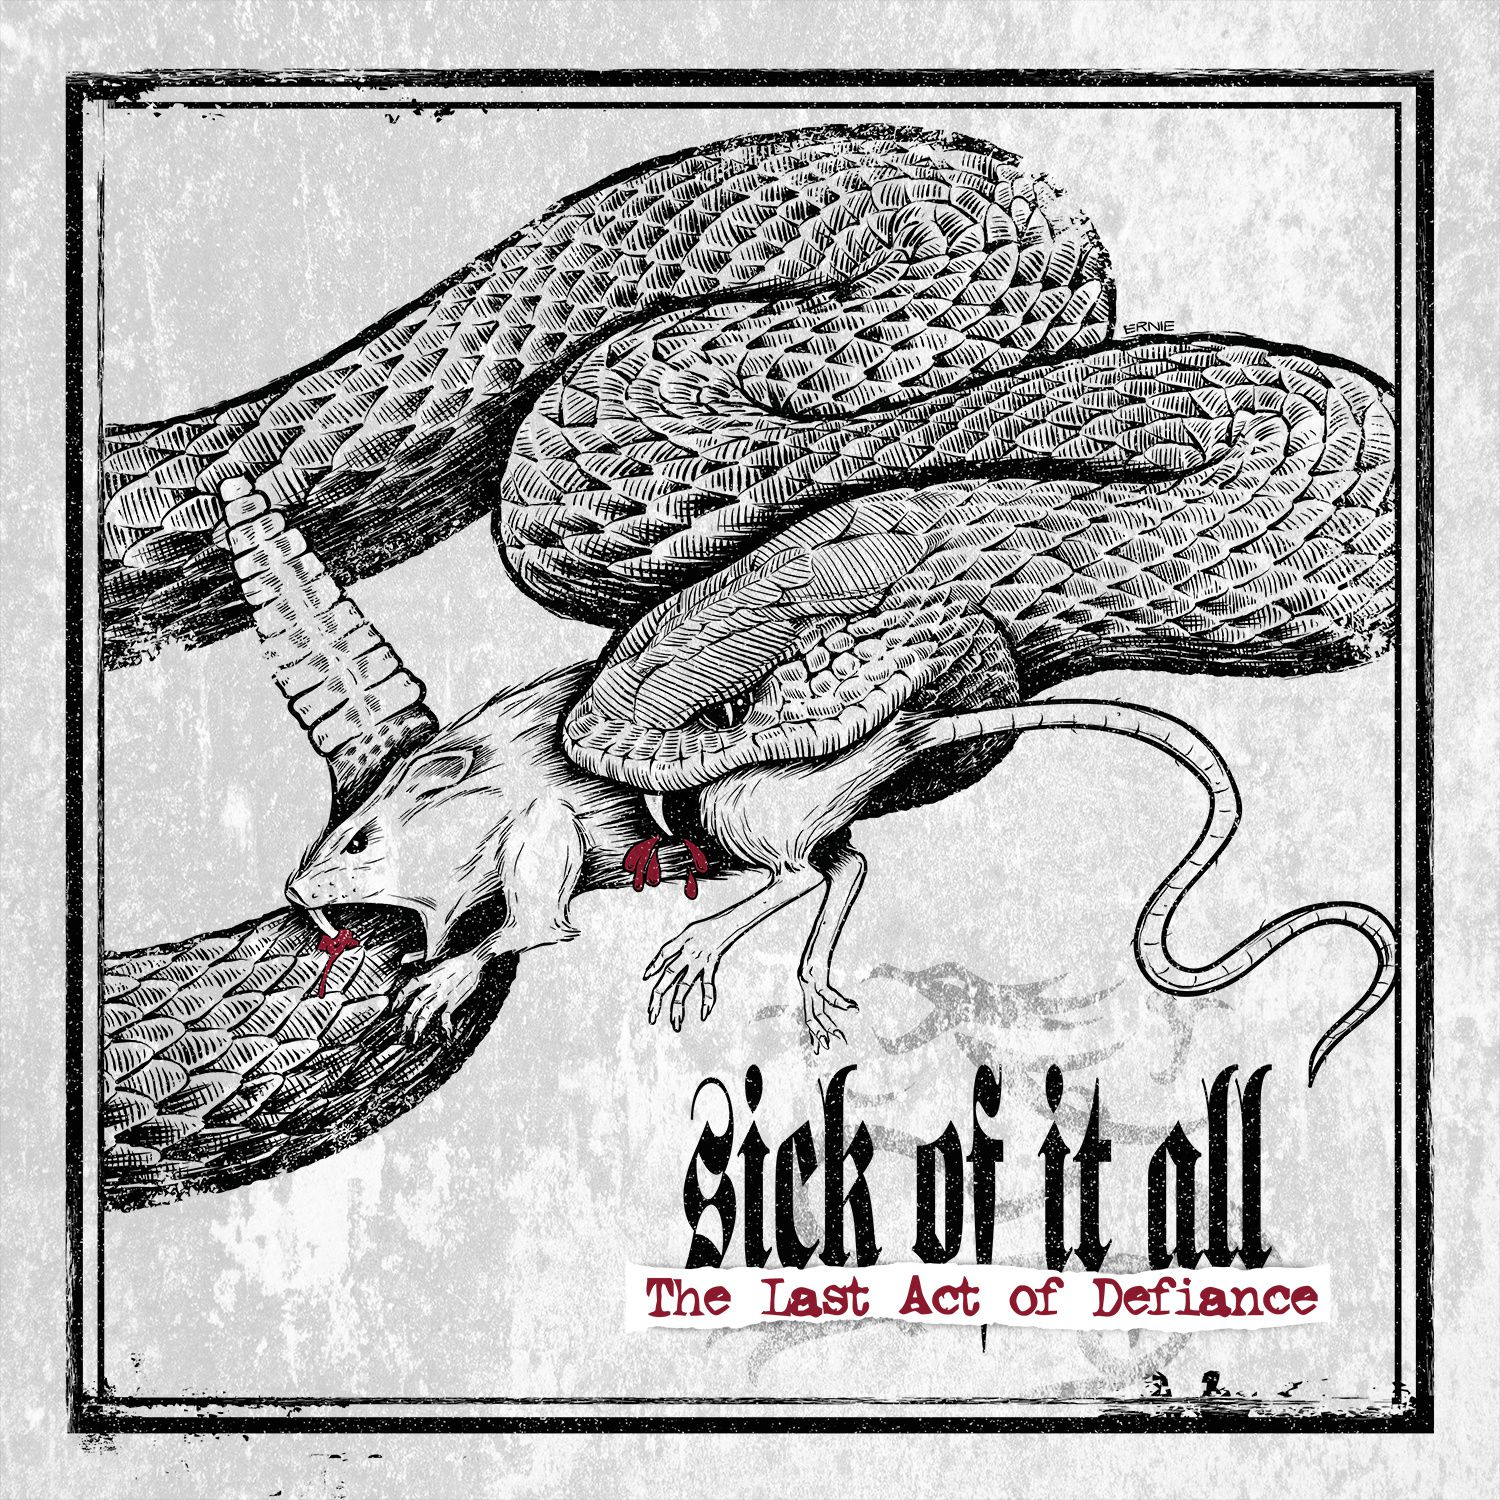 Tracklist & cover from the upcoming SICK OF IT ALL album